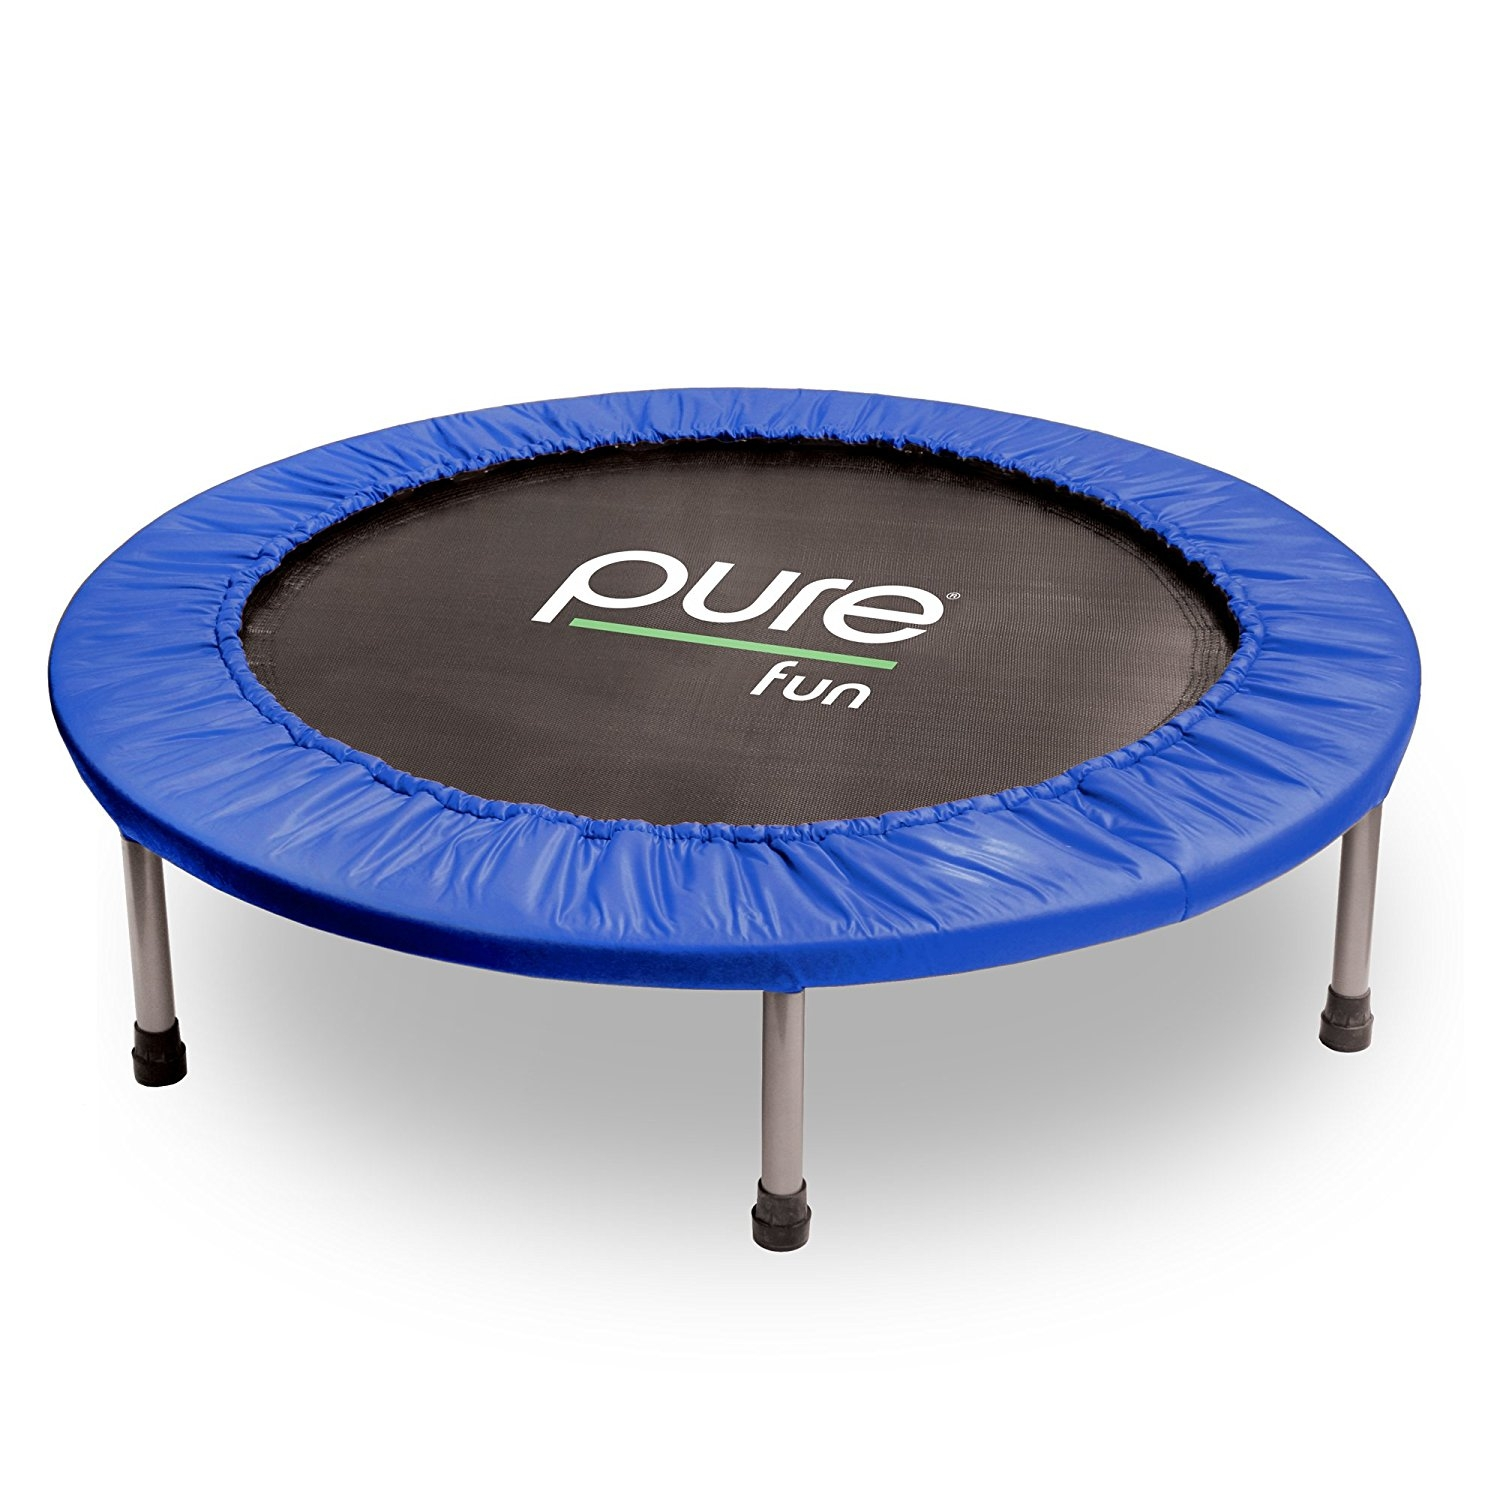 pure fun mini trampoline | re-energize your spiritual practice when life gets busy